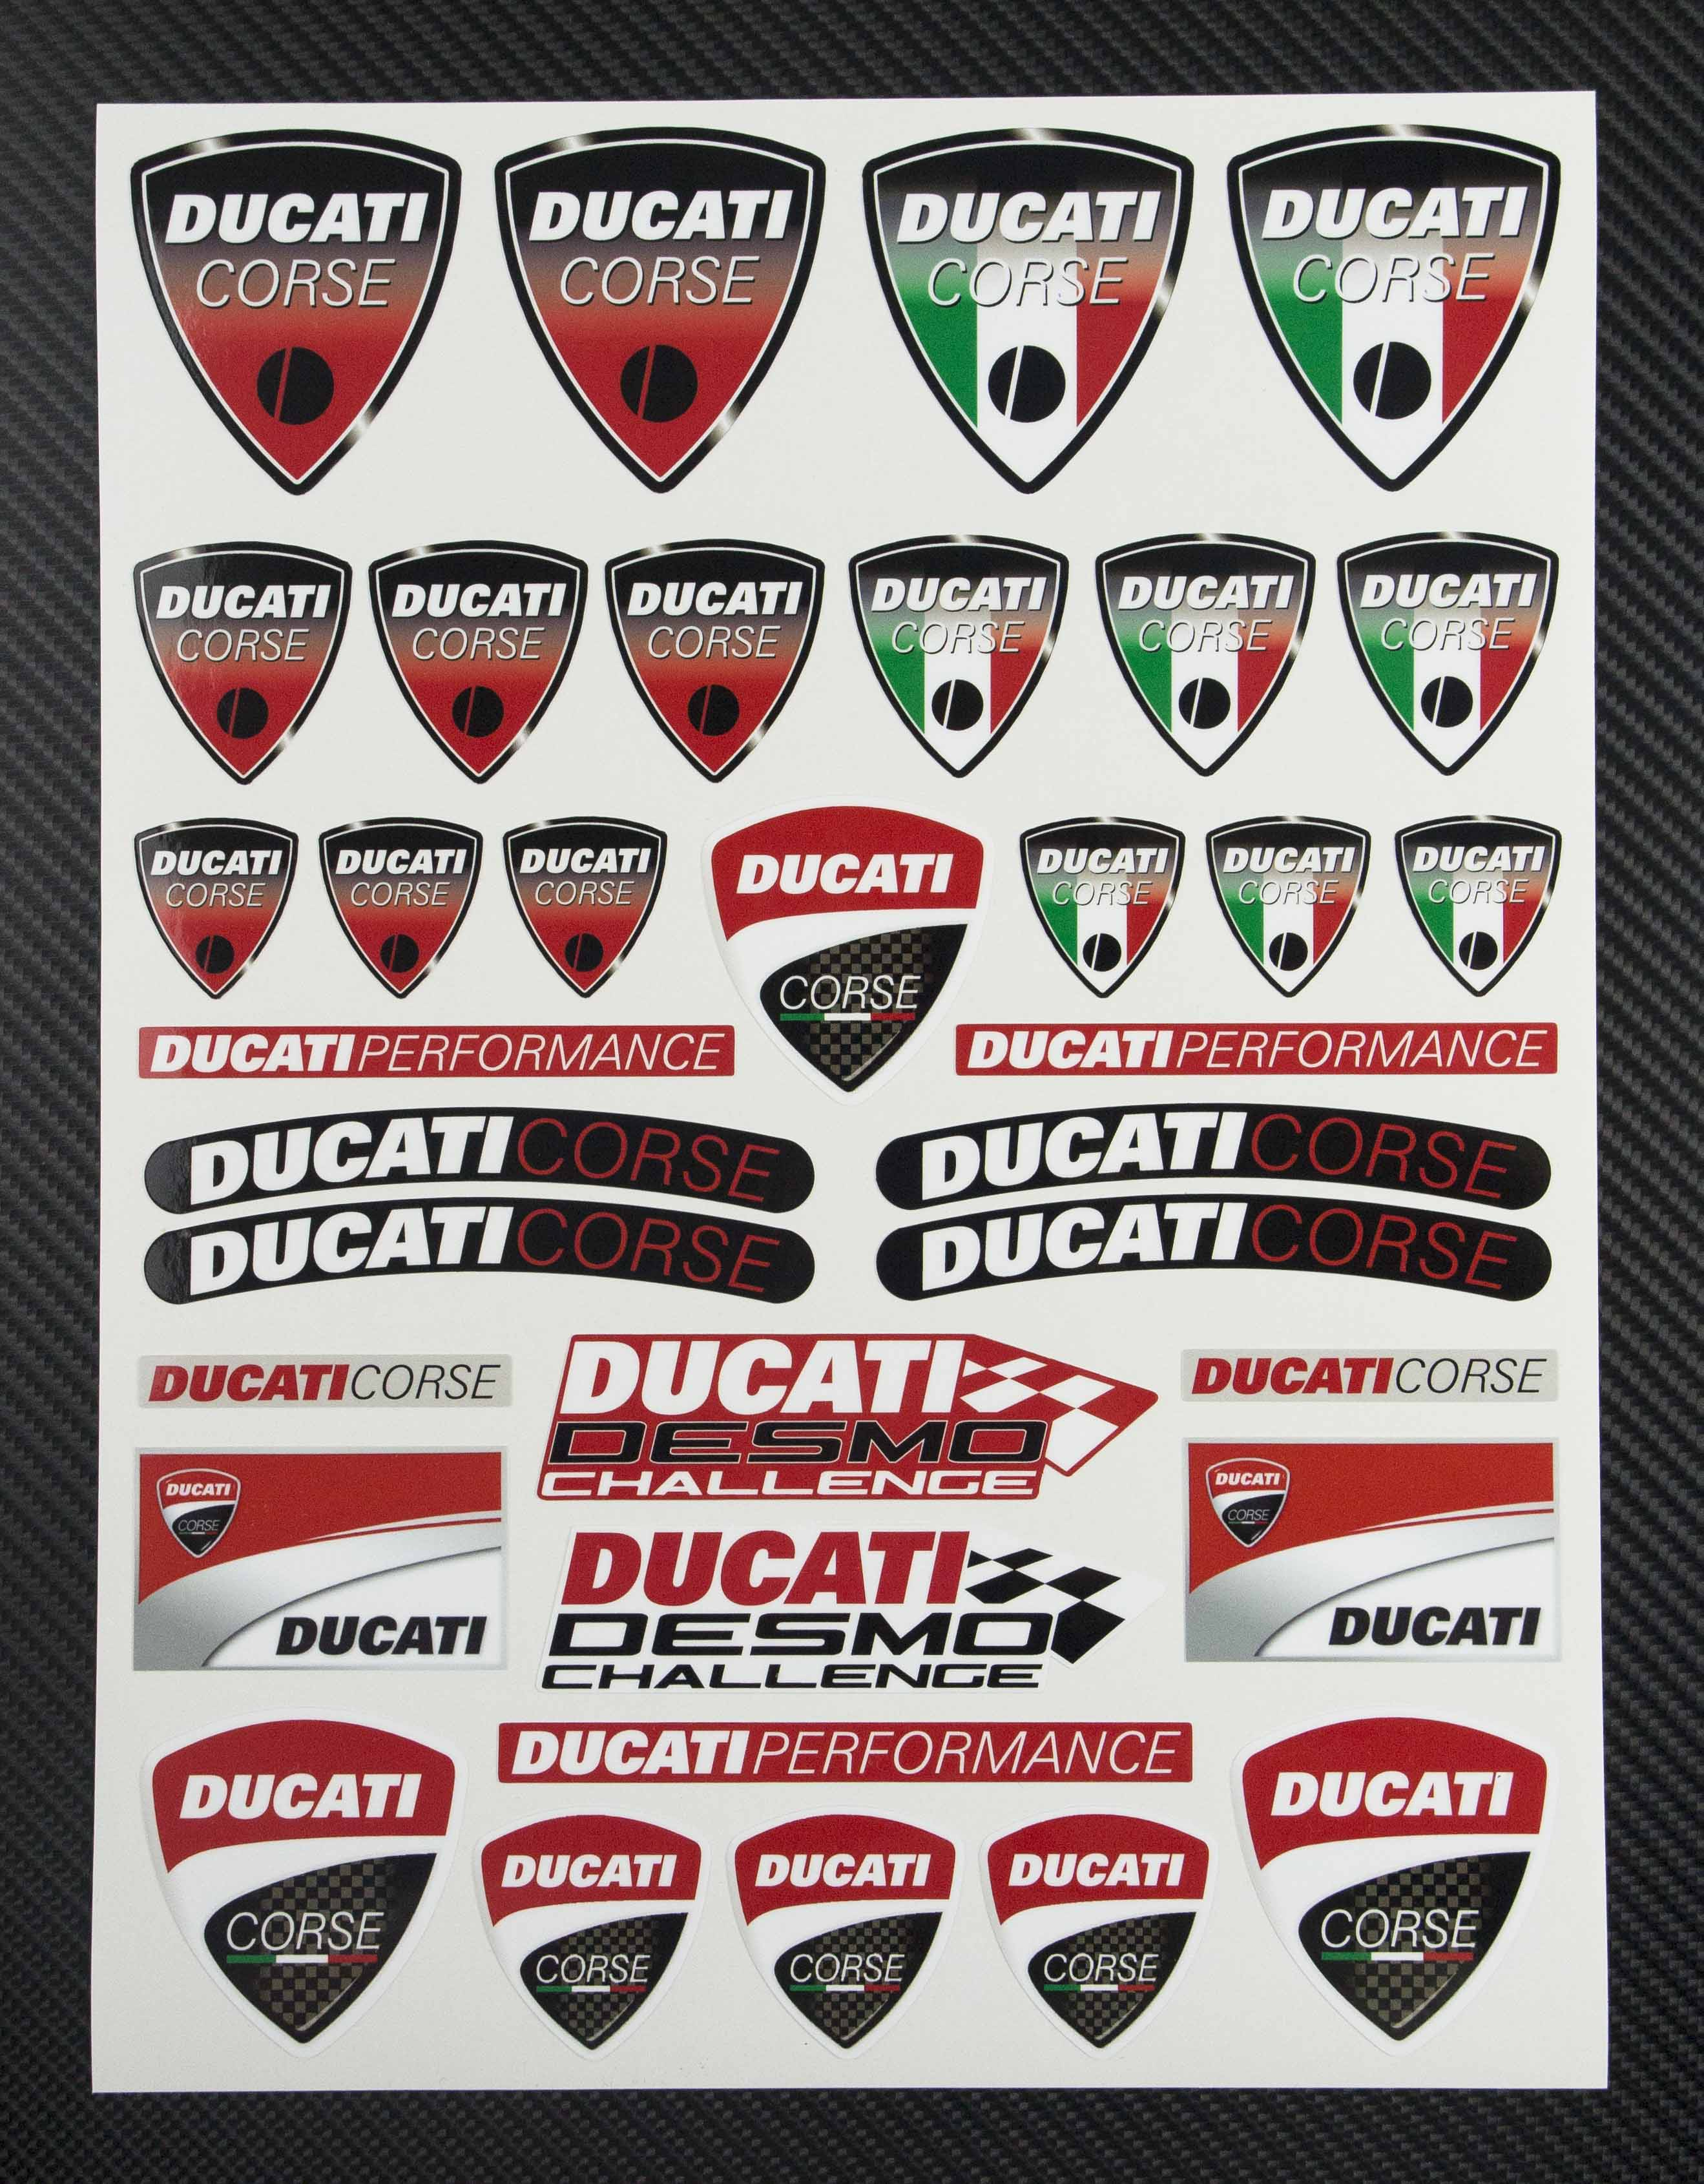 elit templates sticker - ducati corse sticker set satu sticker